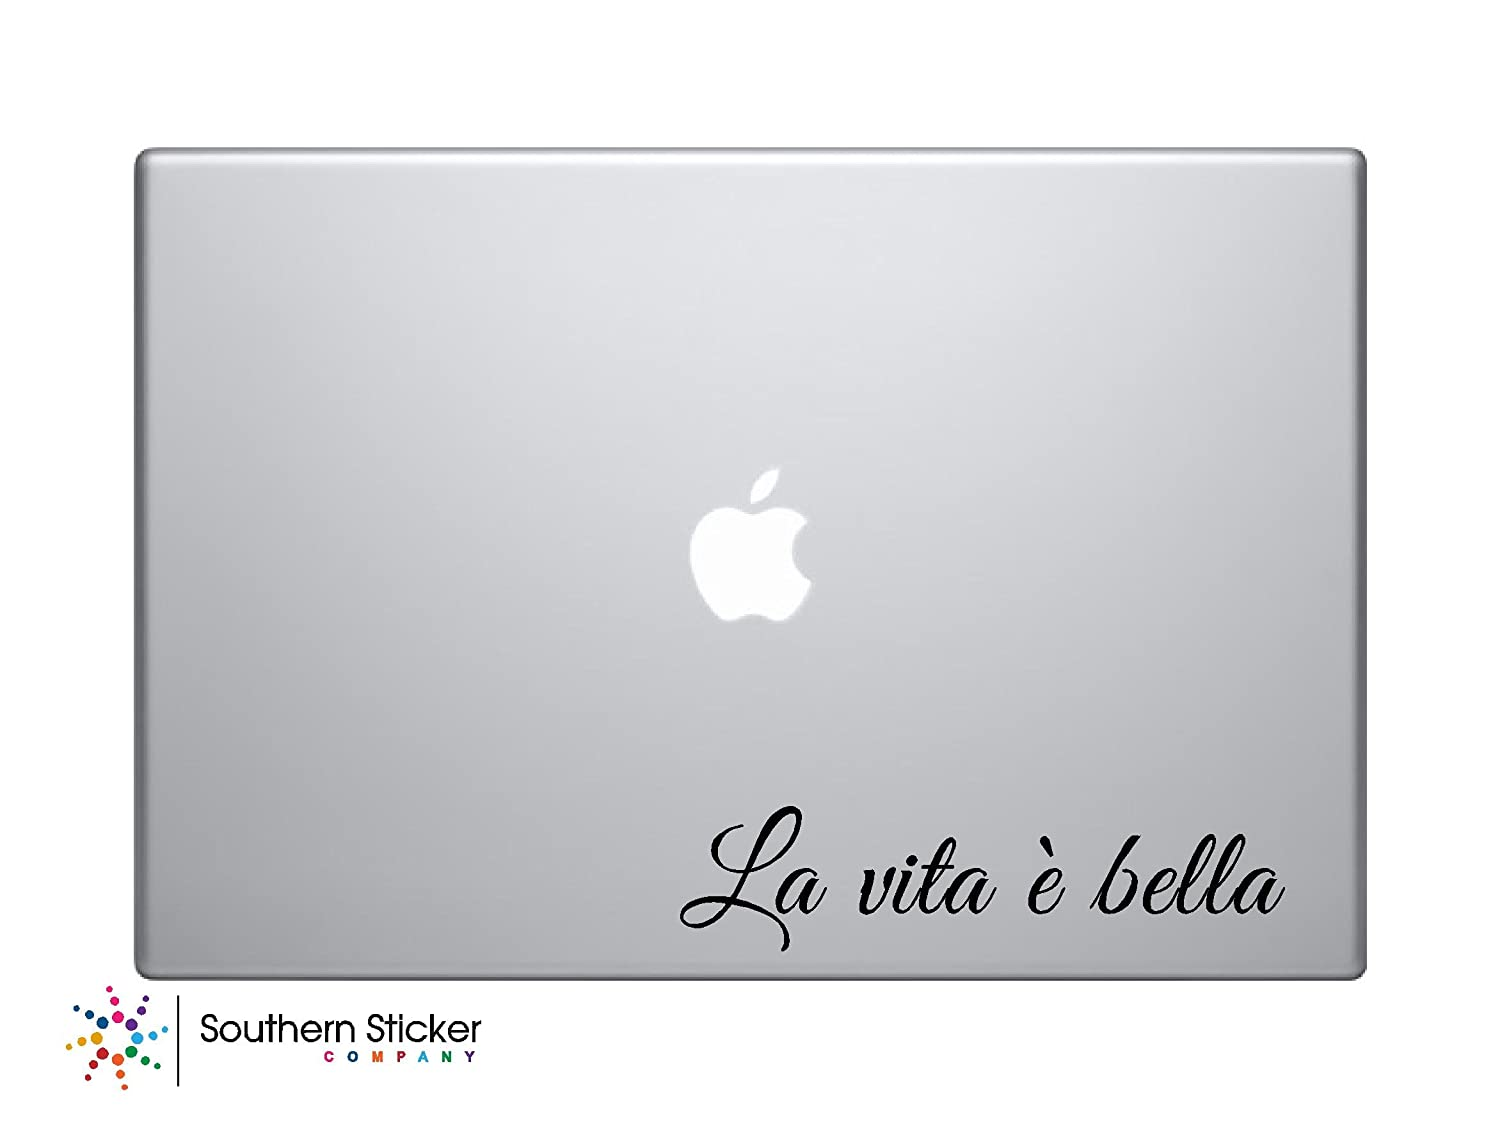 Amazon com la vita e bella italian life is beautiful text black symbol iphone silhouette decal humor macbook symbol iphone disney apple ipad decal skin